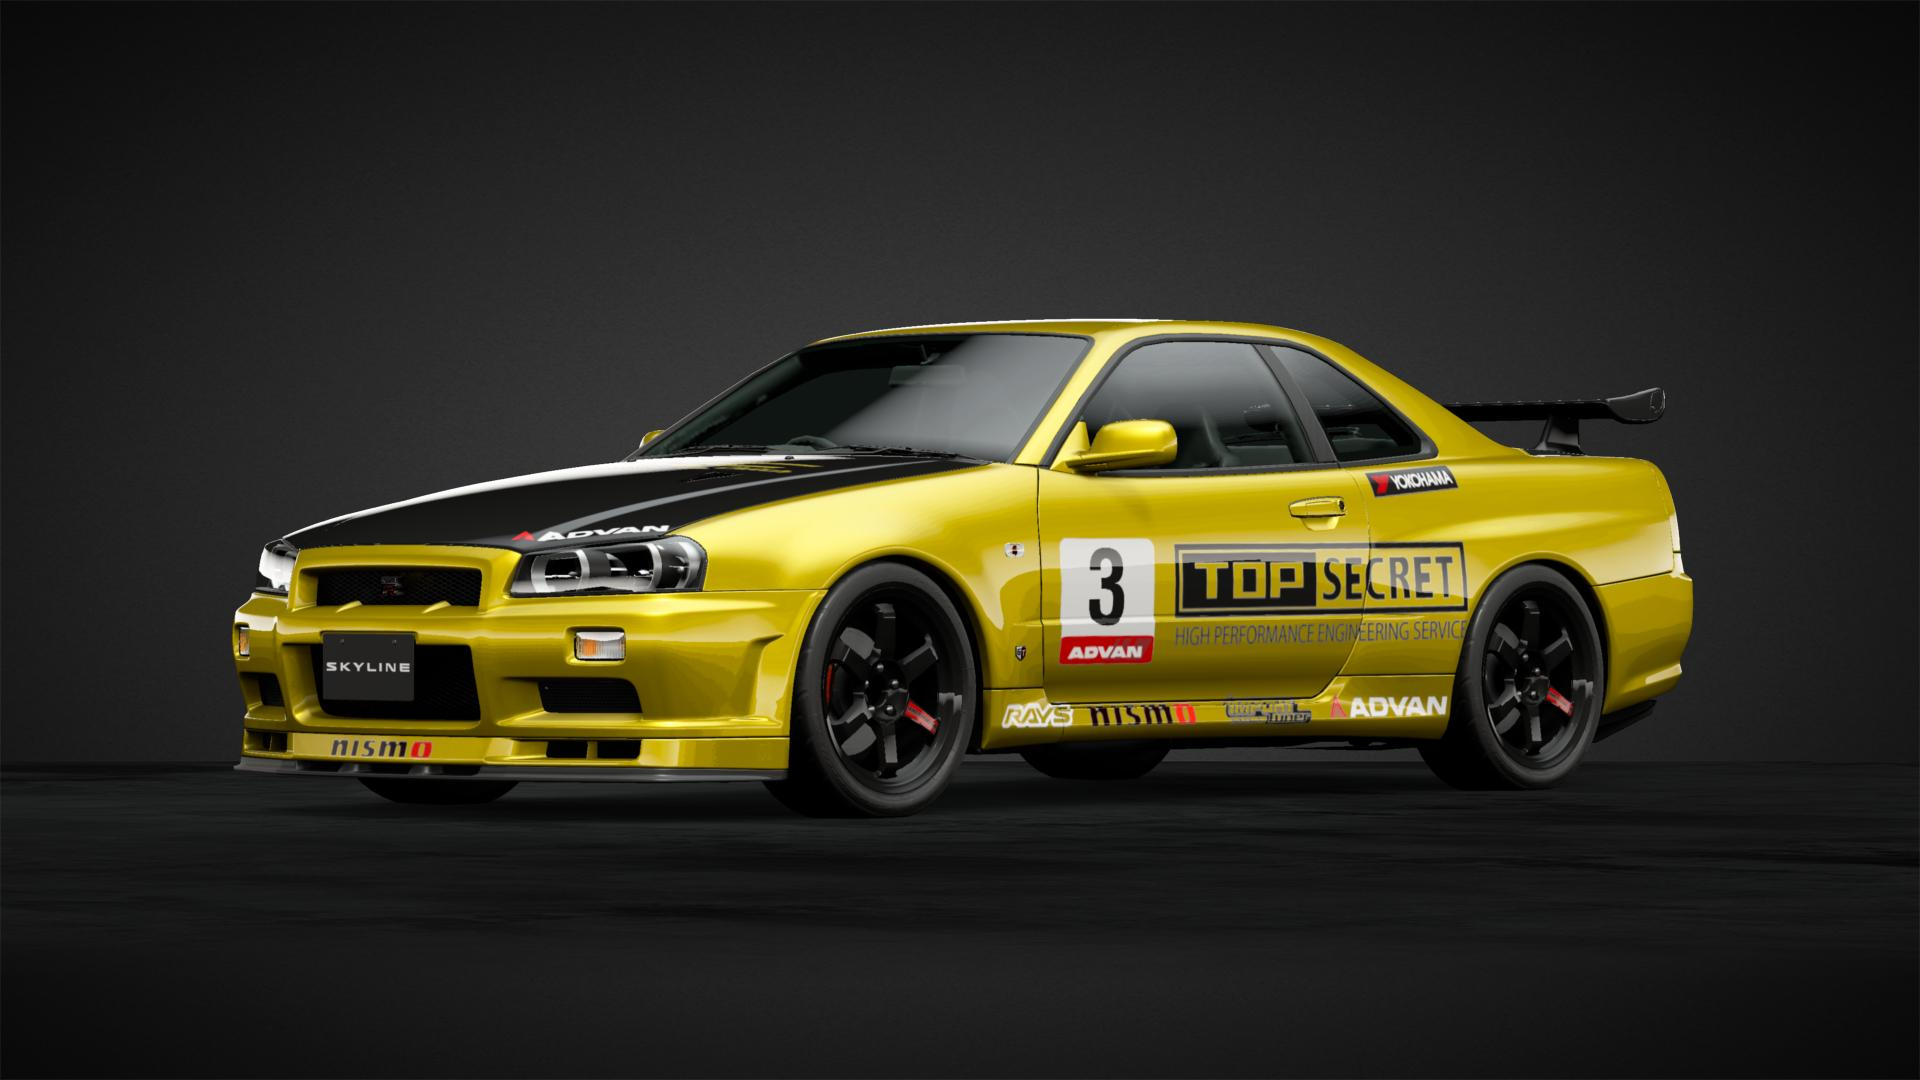 R34 top secret - Car Livery by integra_o1 | Community | Gran